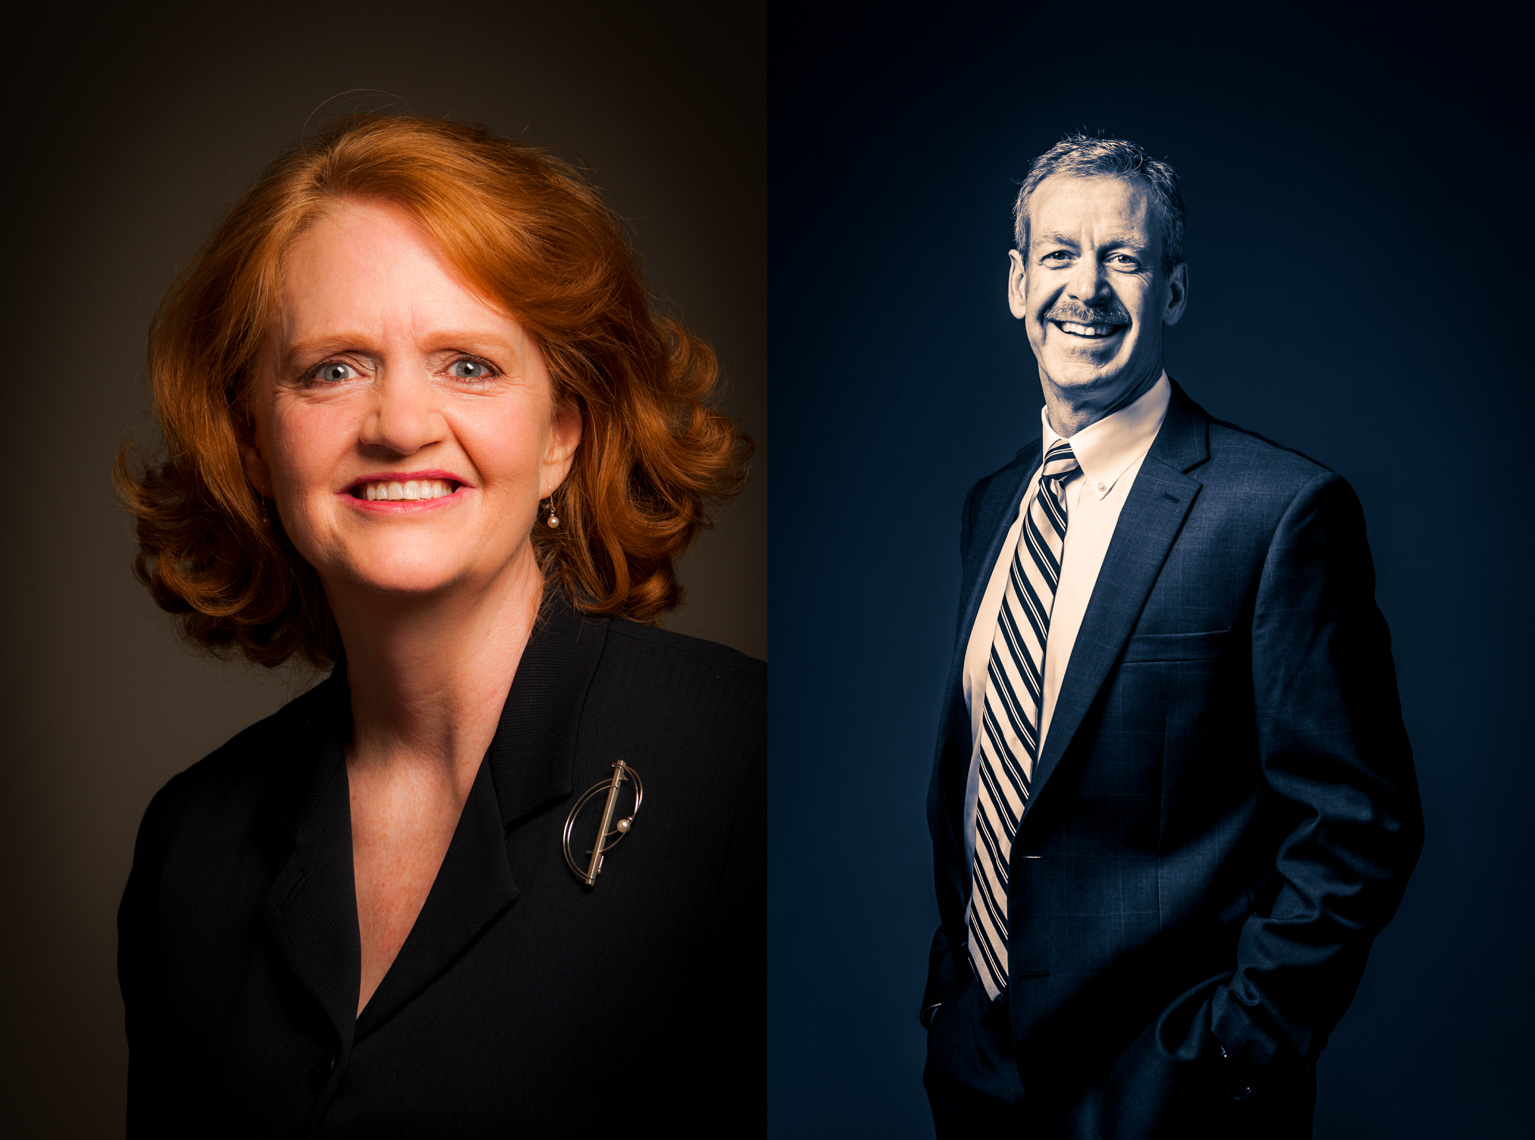 Boston Executive Headshot Photography | Social Media Profile Photos | Linkedin Photos